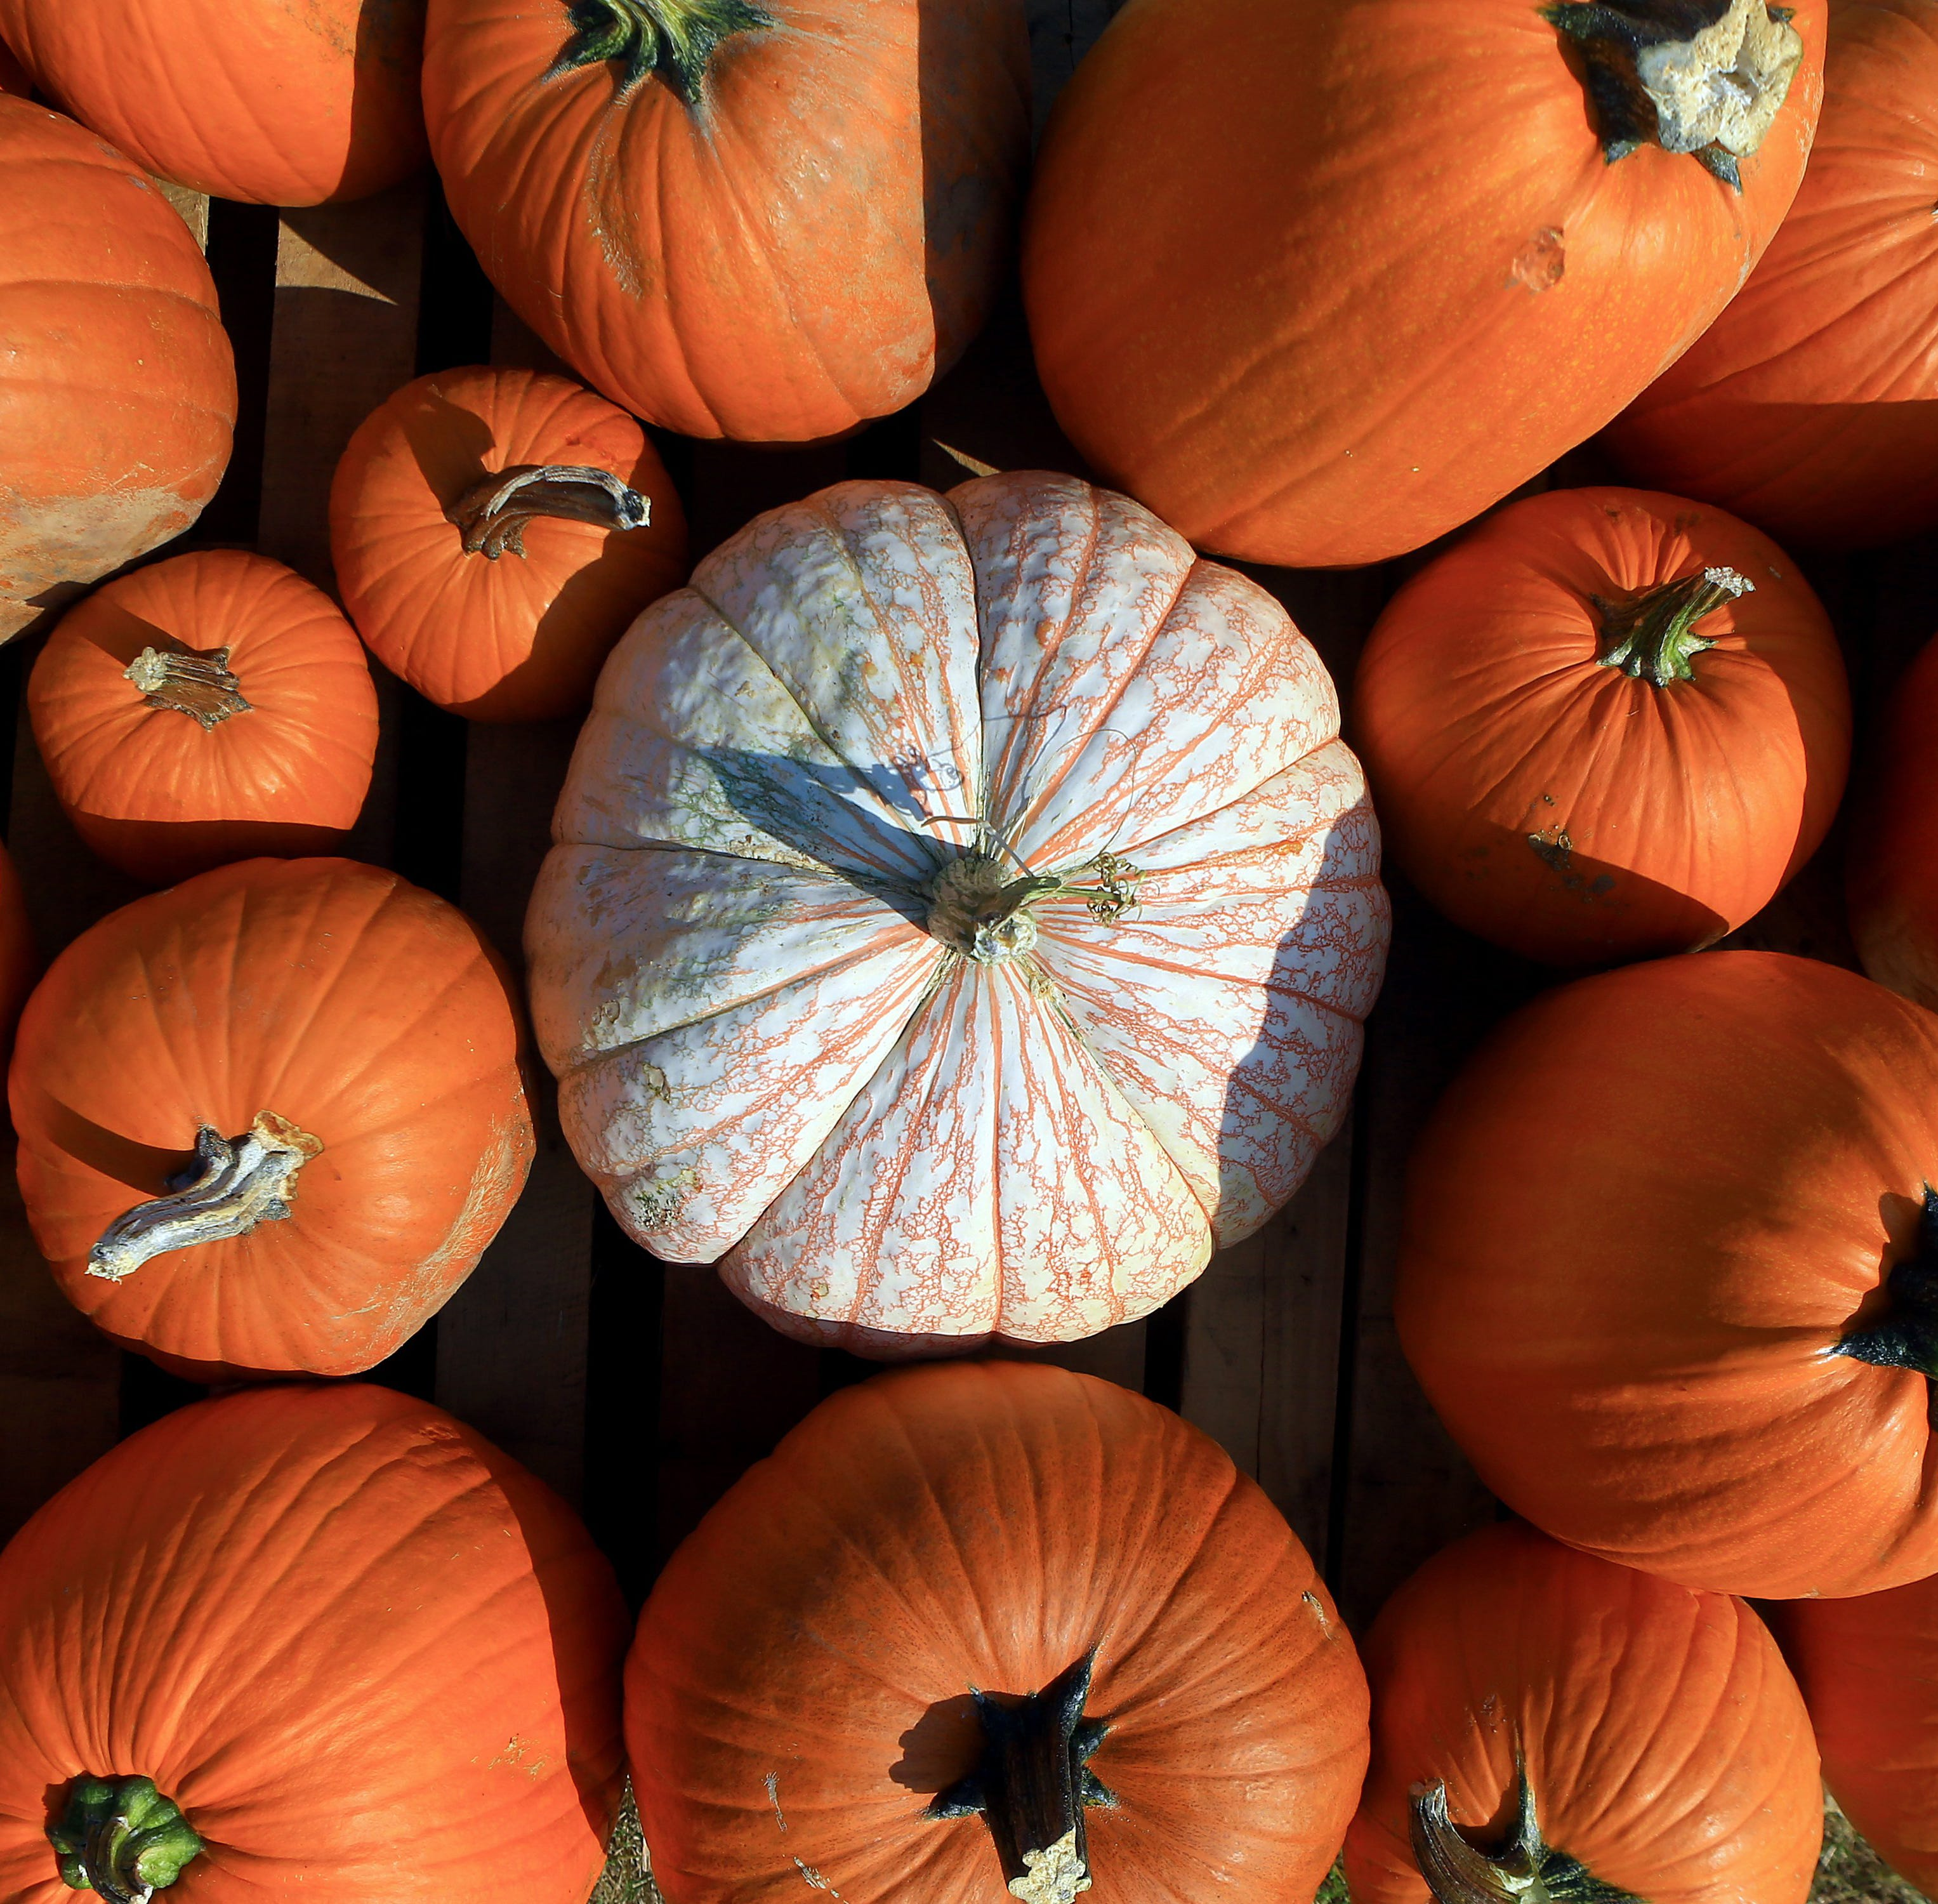 Festivals, pumpkin patches, haunted houses and Halloween carnivals: It's time for fall fun in Corpus Christi.